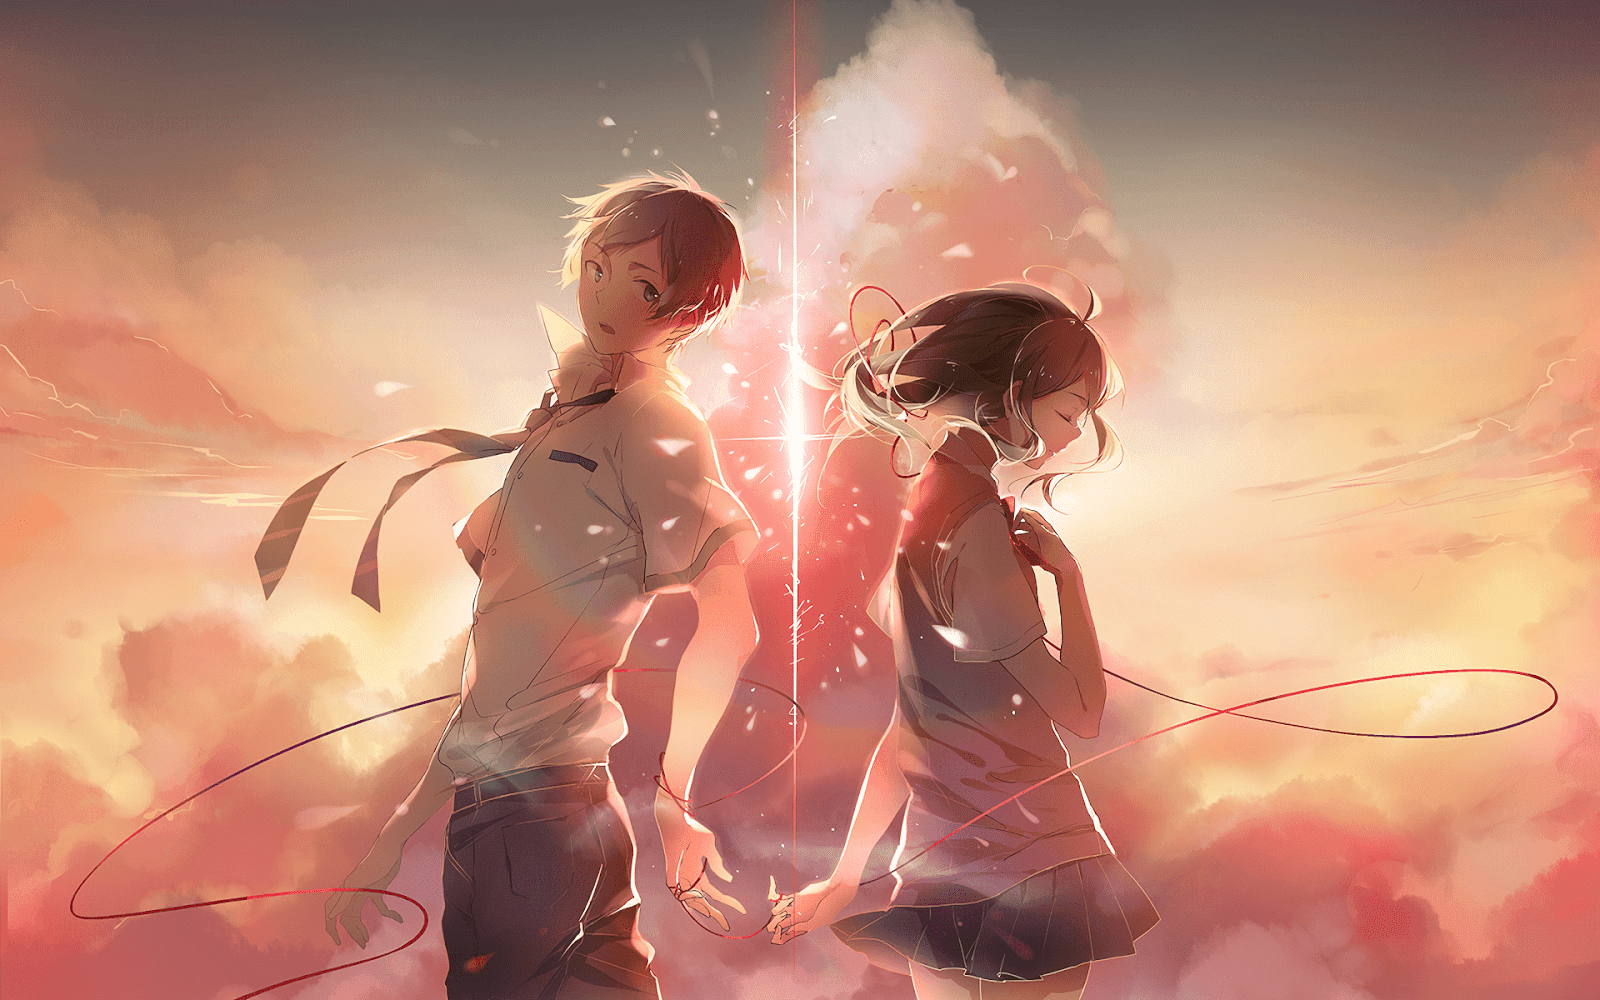 AowVN%2B%252847%2529 - [ Hình Nền ] Anime Your Name. - Kimi no Nawa full HD cực đẹp | Anime Wallpaper